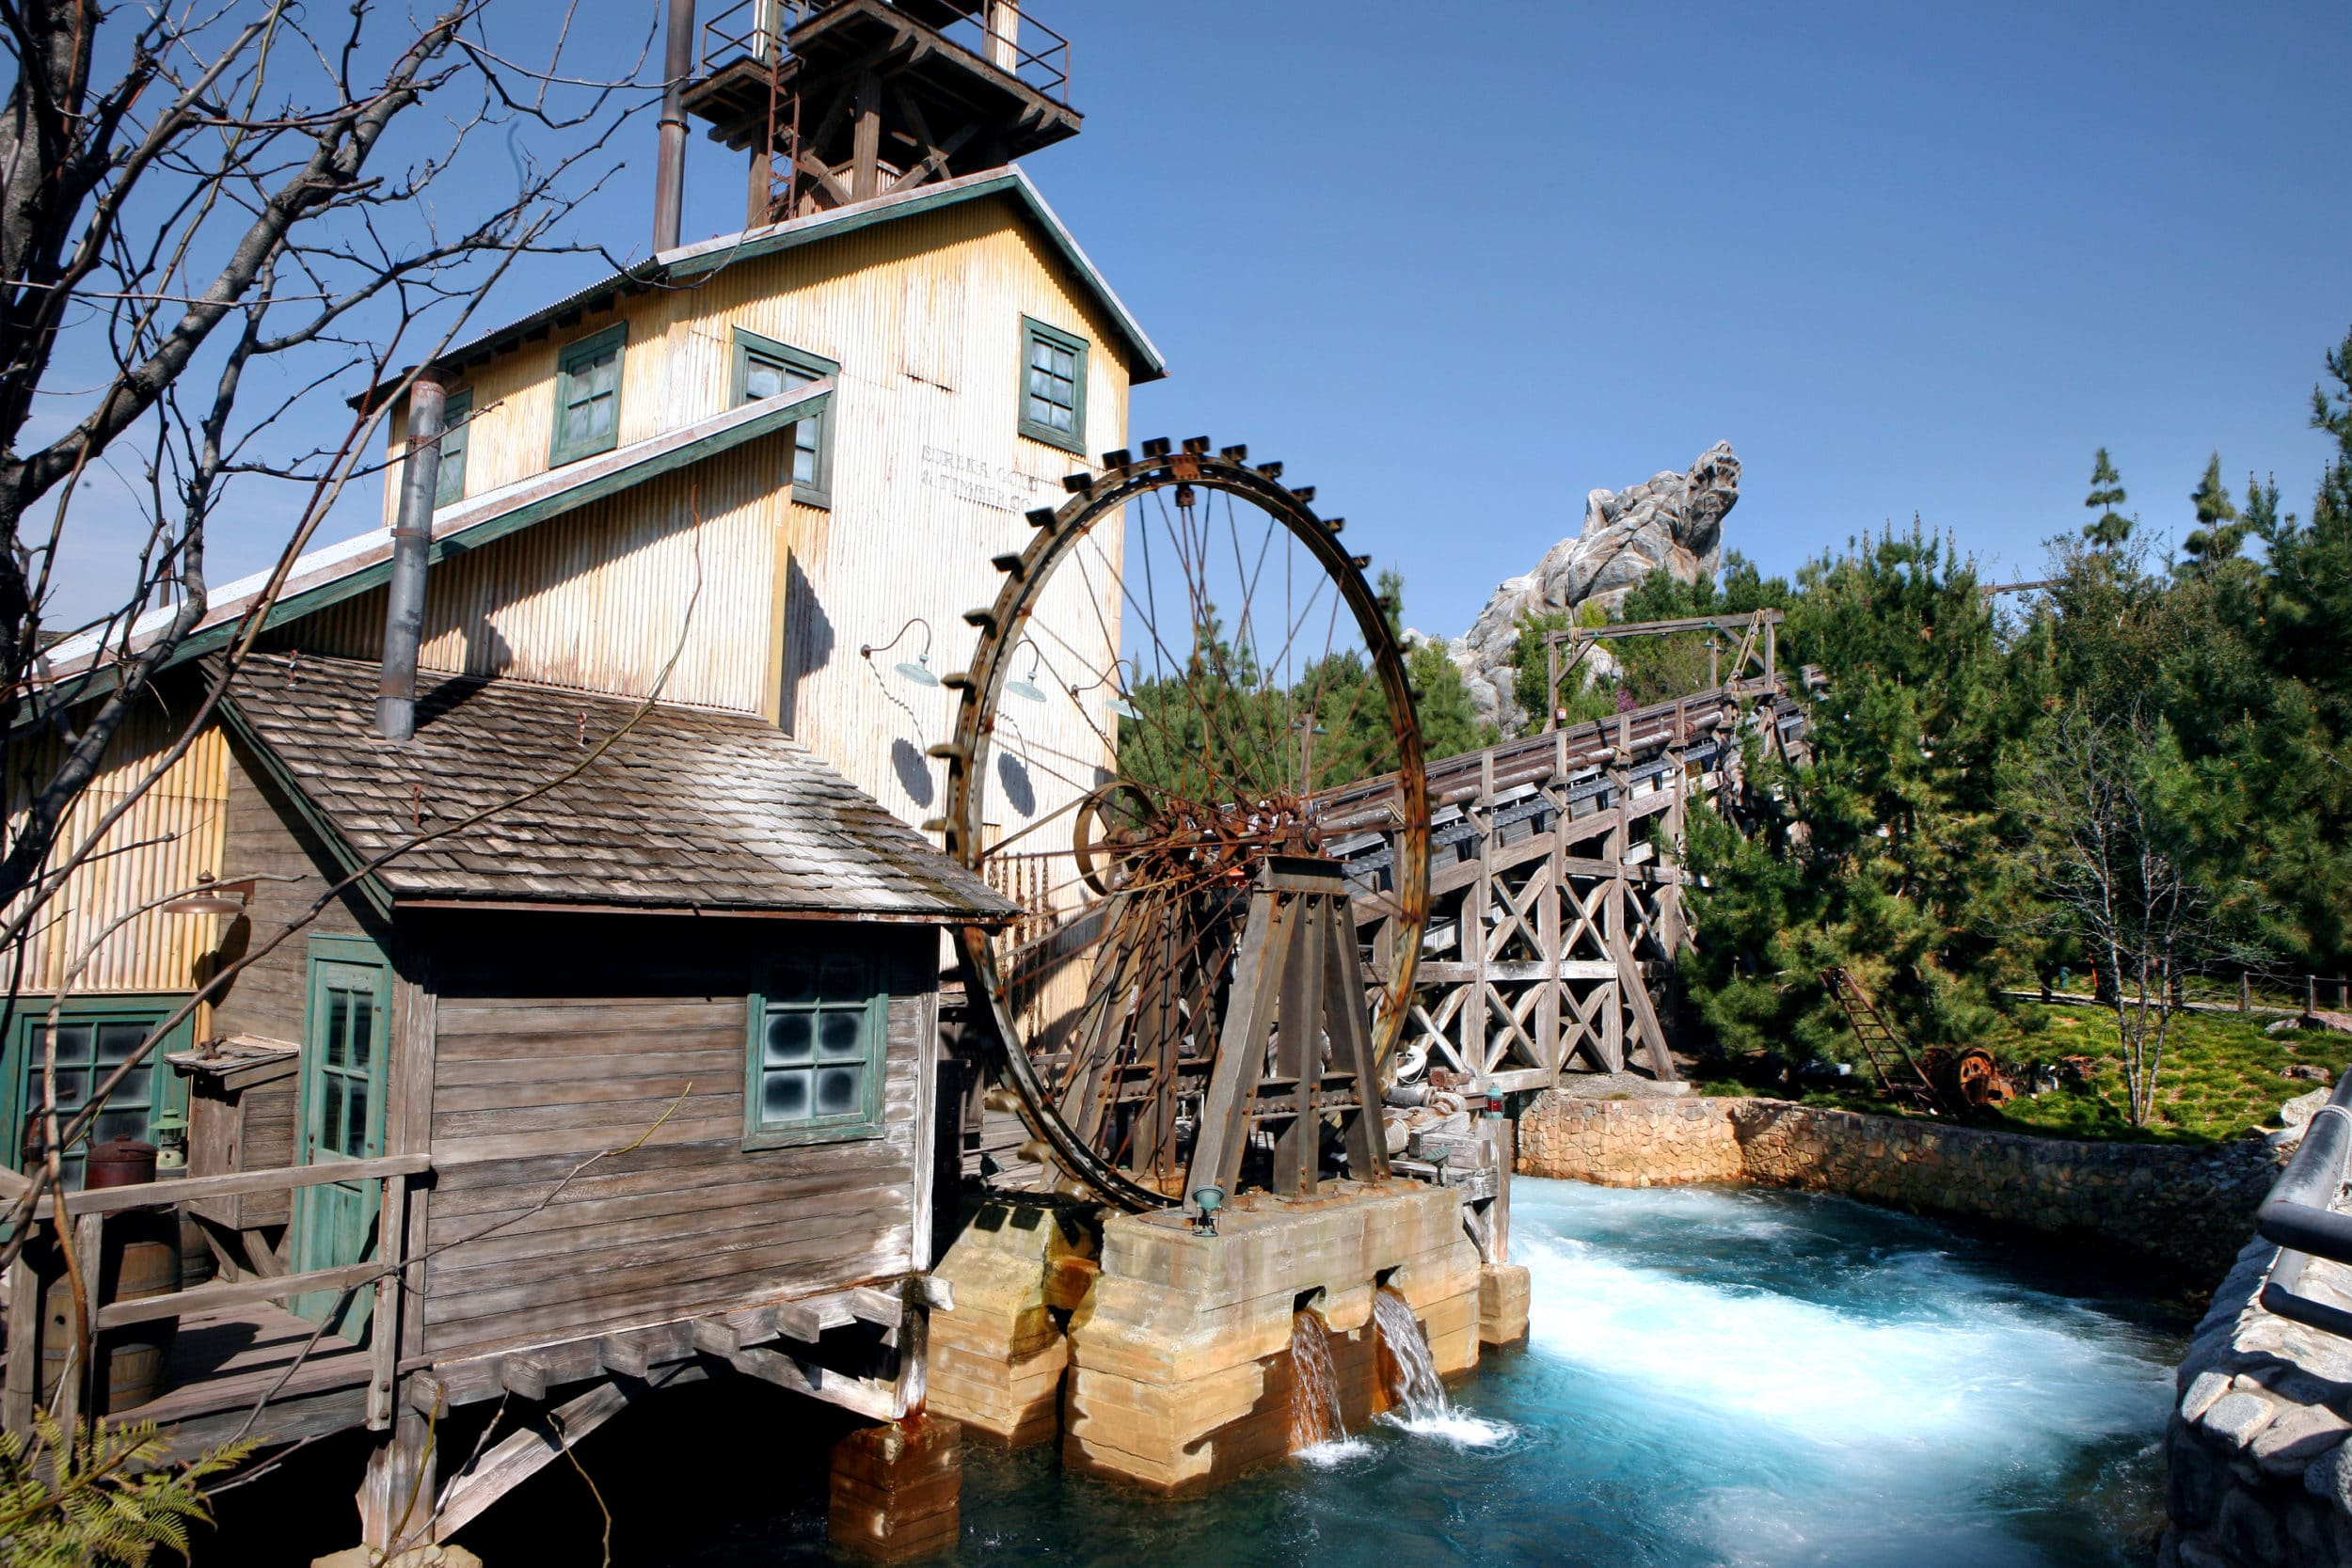 Grizzly Peak land at Disney California Adventure